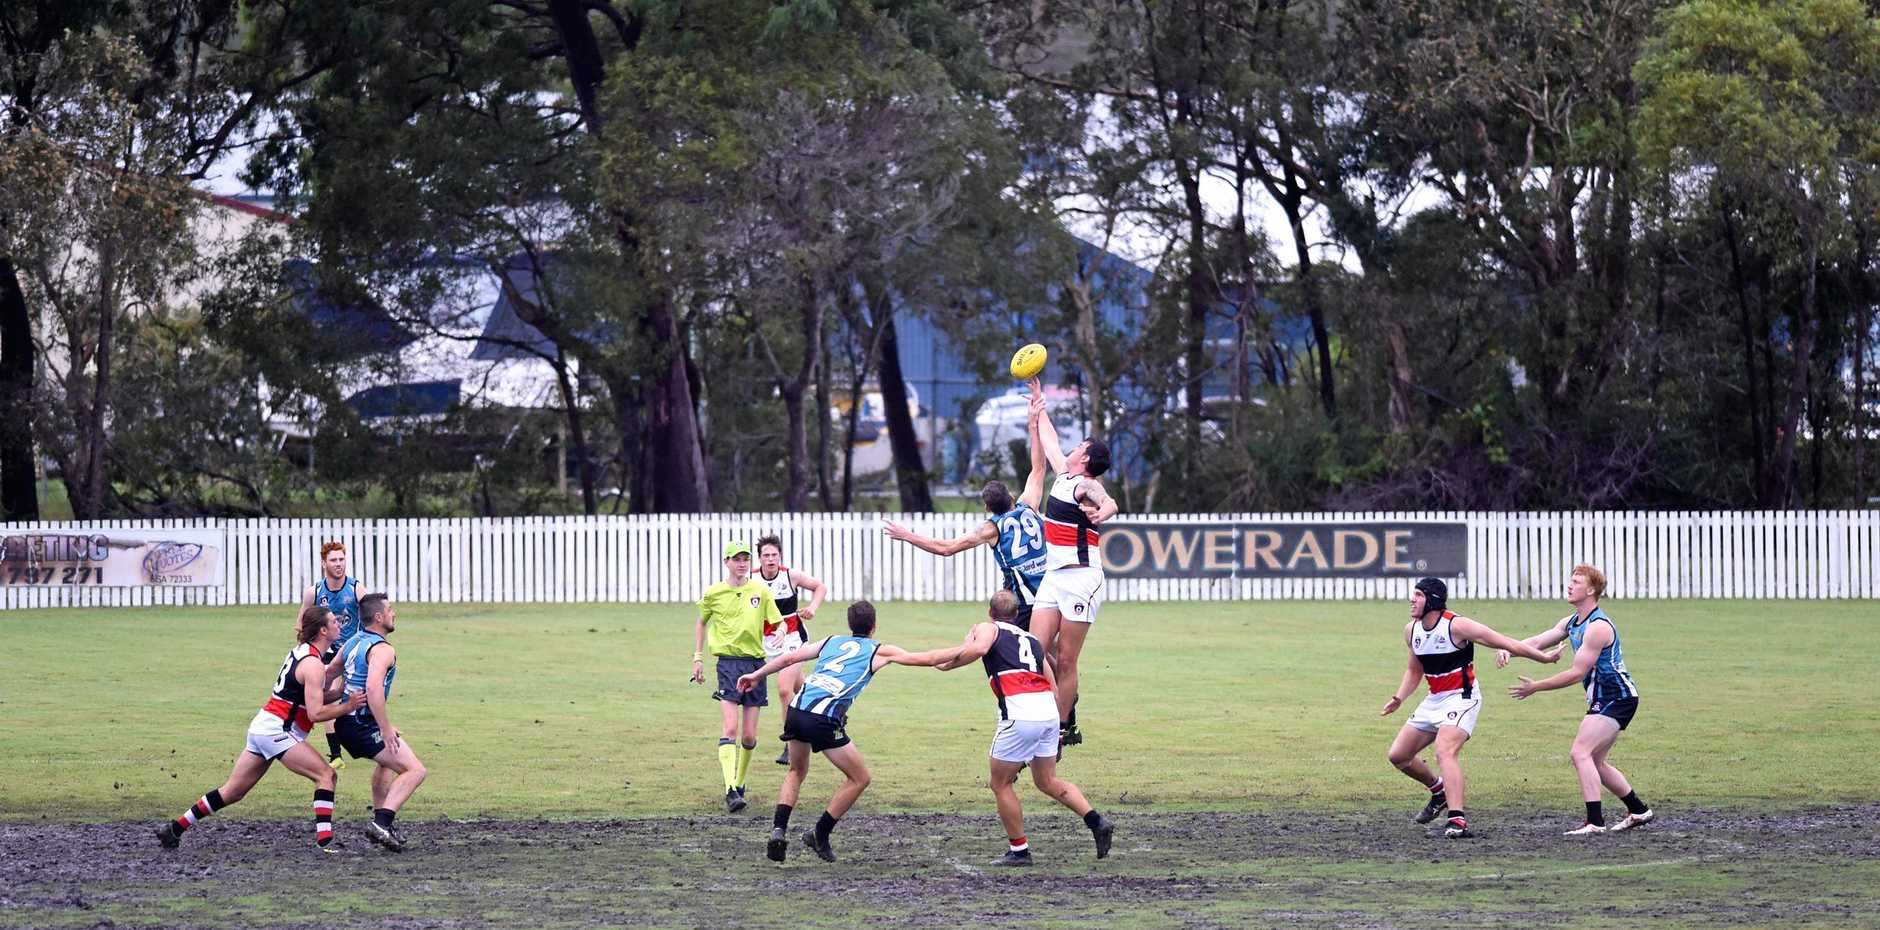 LEAPING HIGH: Bay Power's Shannon Anderson flies high in Saturday's AFL - Wide Bay match between Bay Power and Brothers Bulldogs